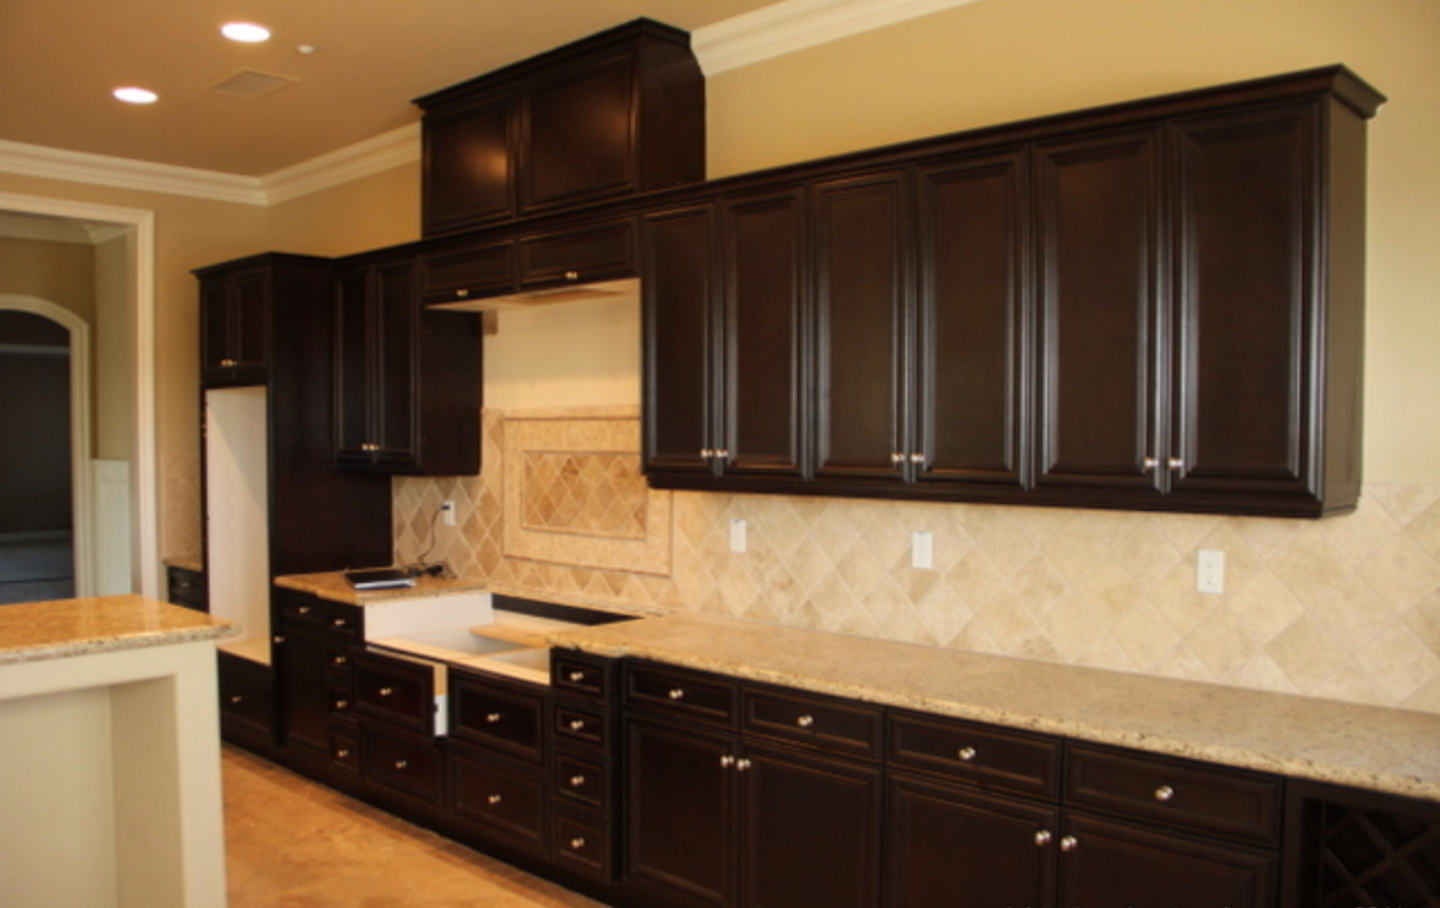 Kitchen Cabinet Painting Painting Kitchen Cabinets And Cabinet - Kitchen cabinet painters near me